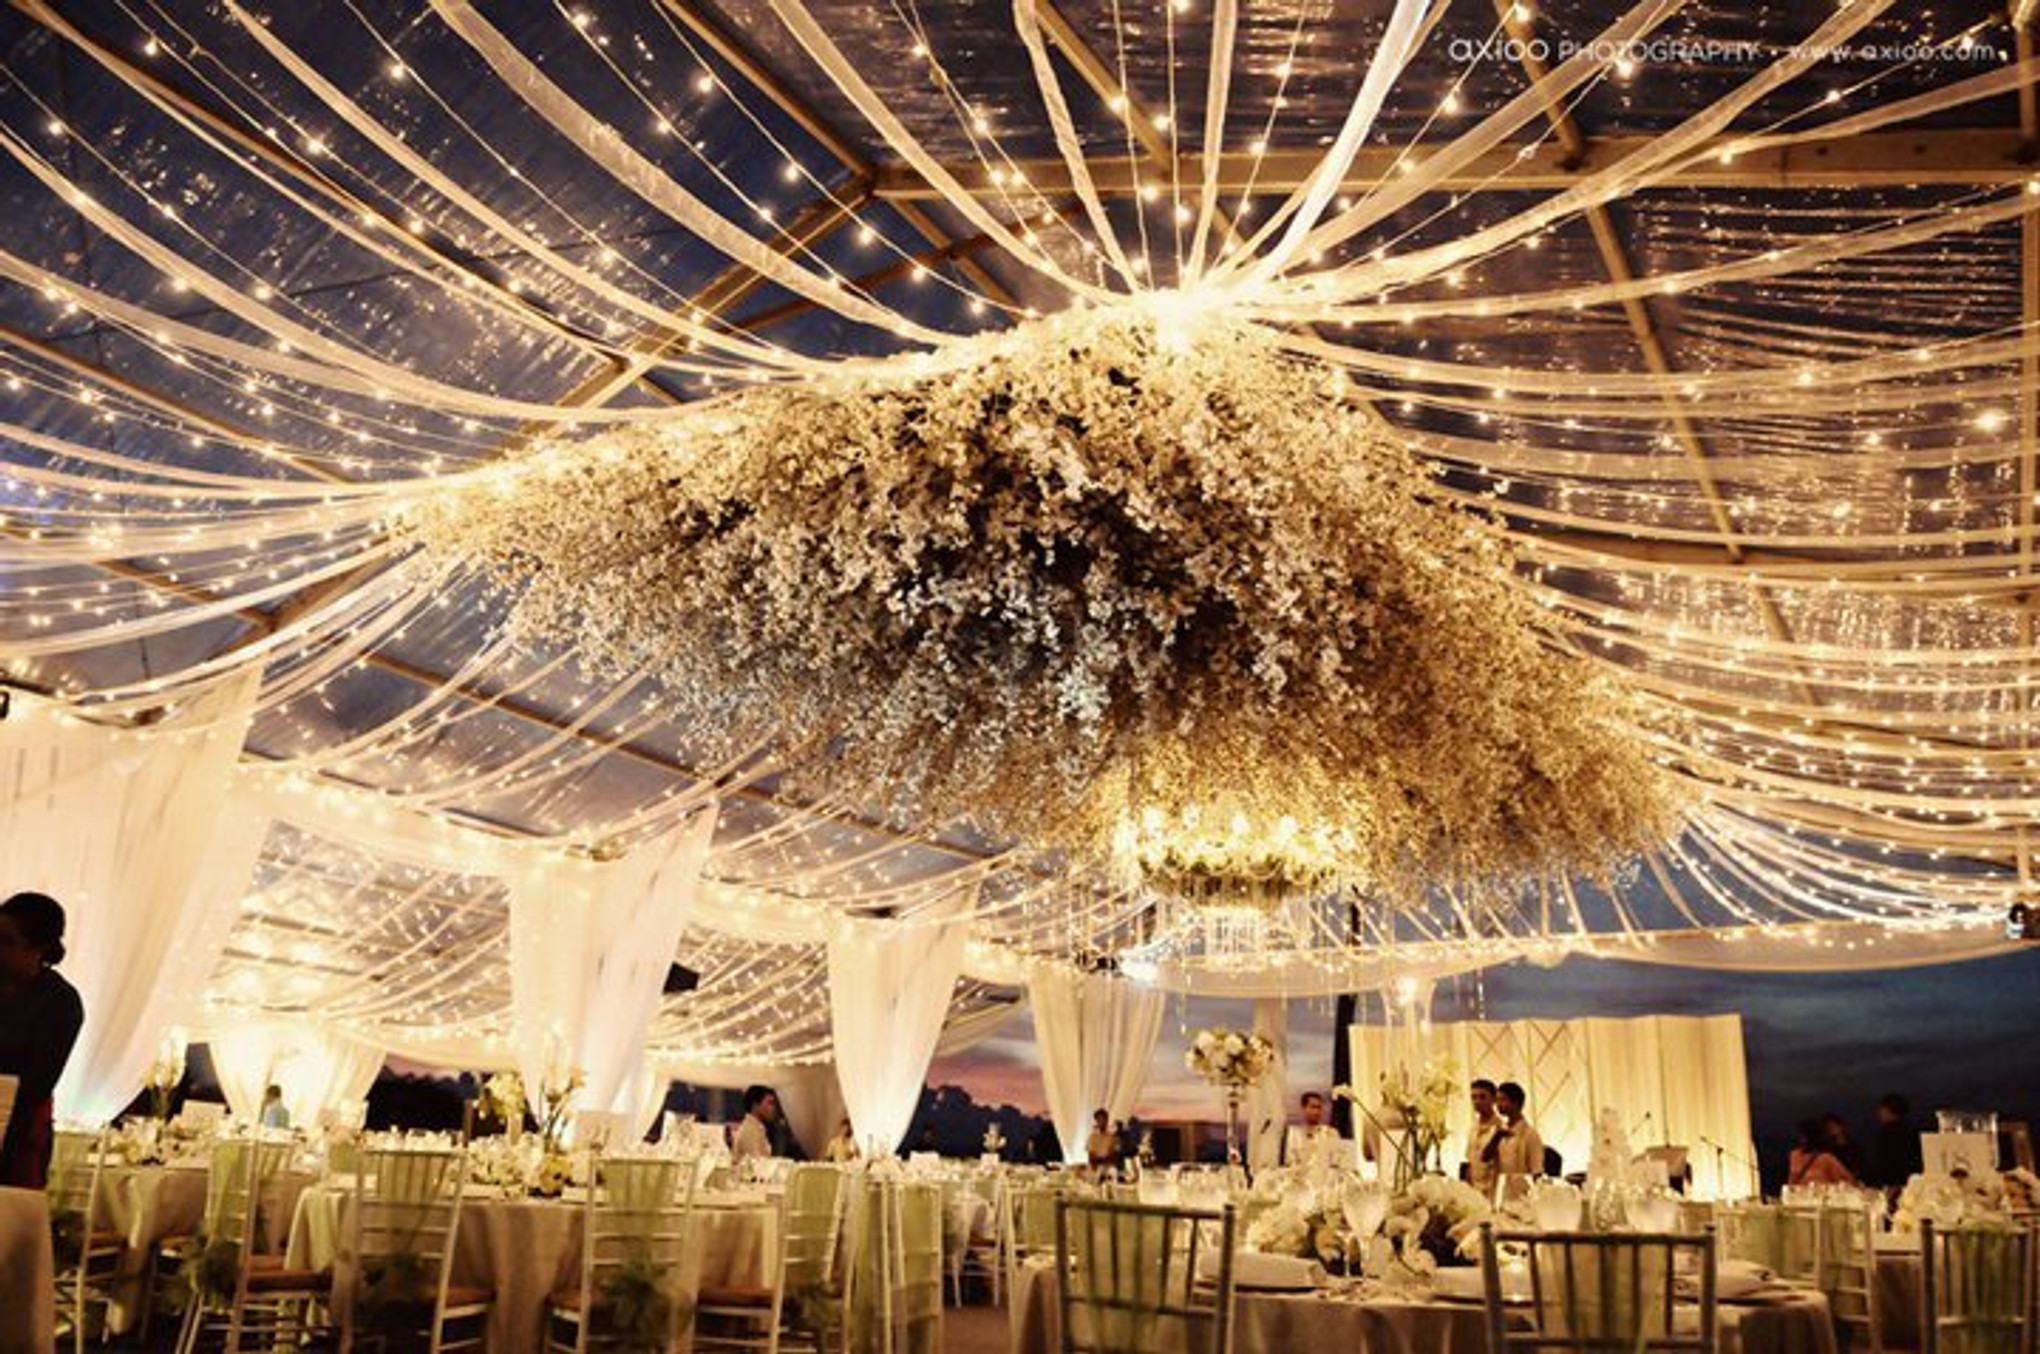 5 Amazing Wedding Venues in Bandung You Have to Check Out